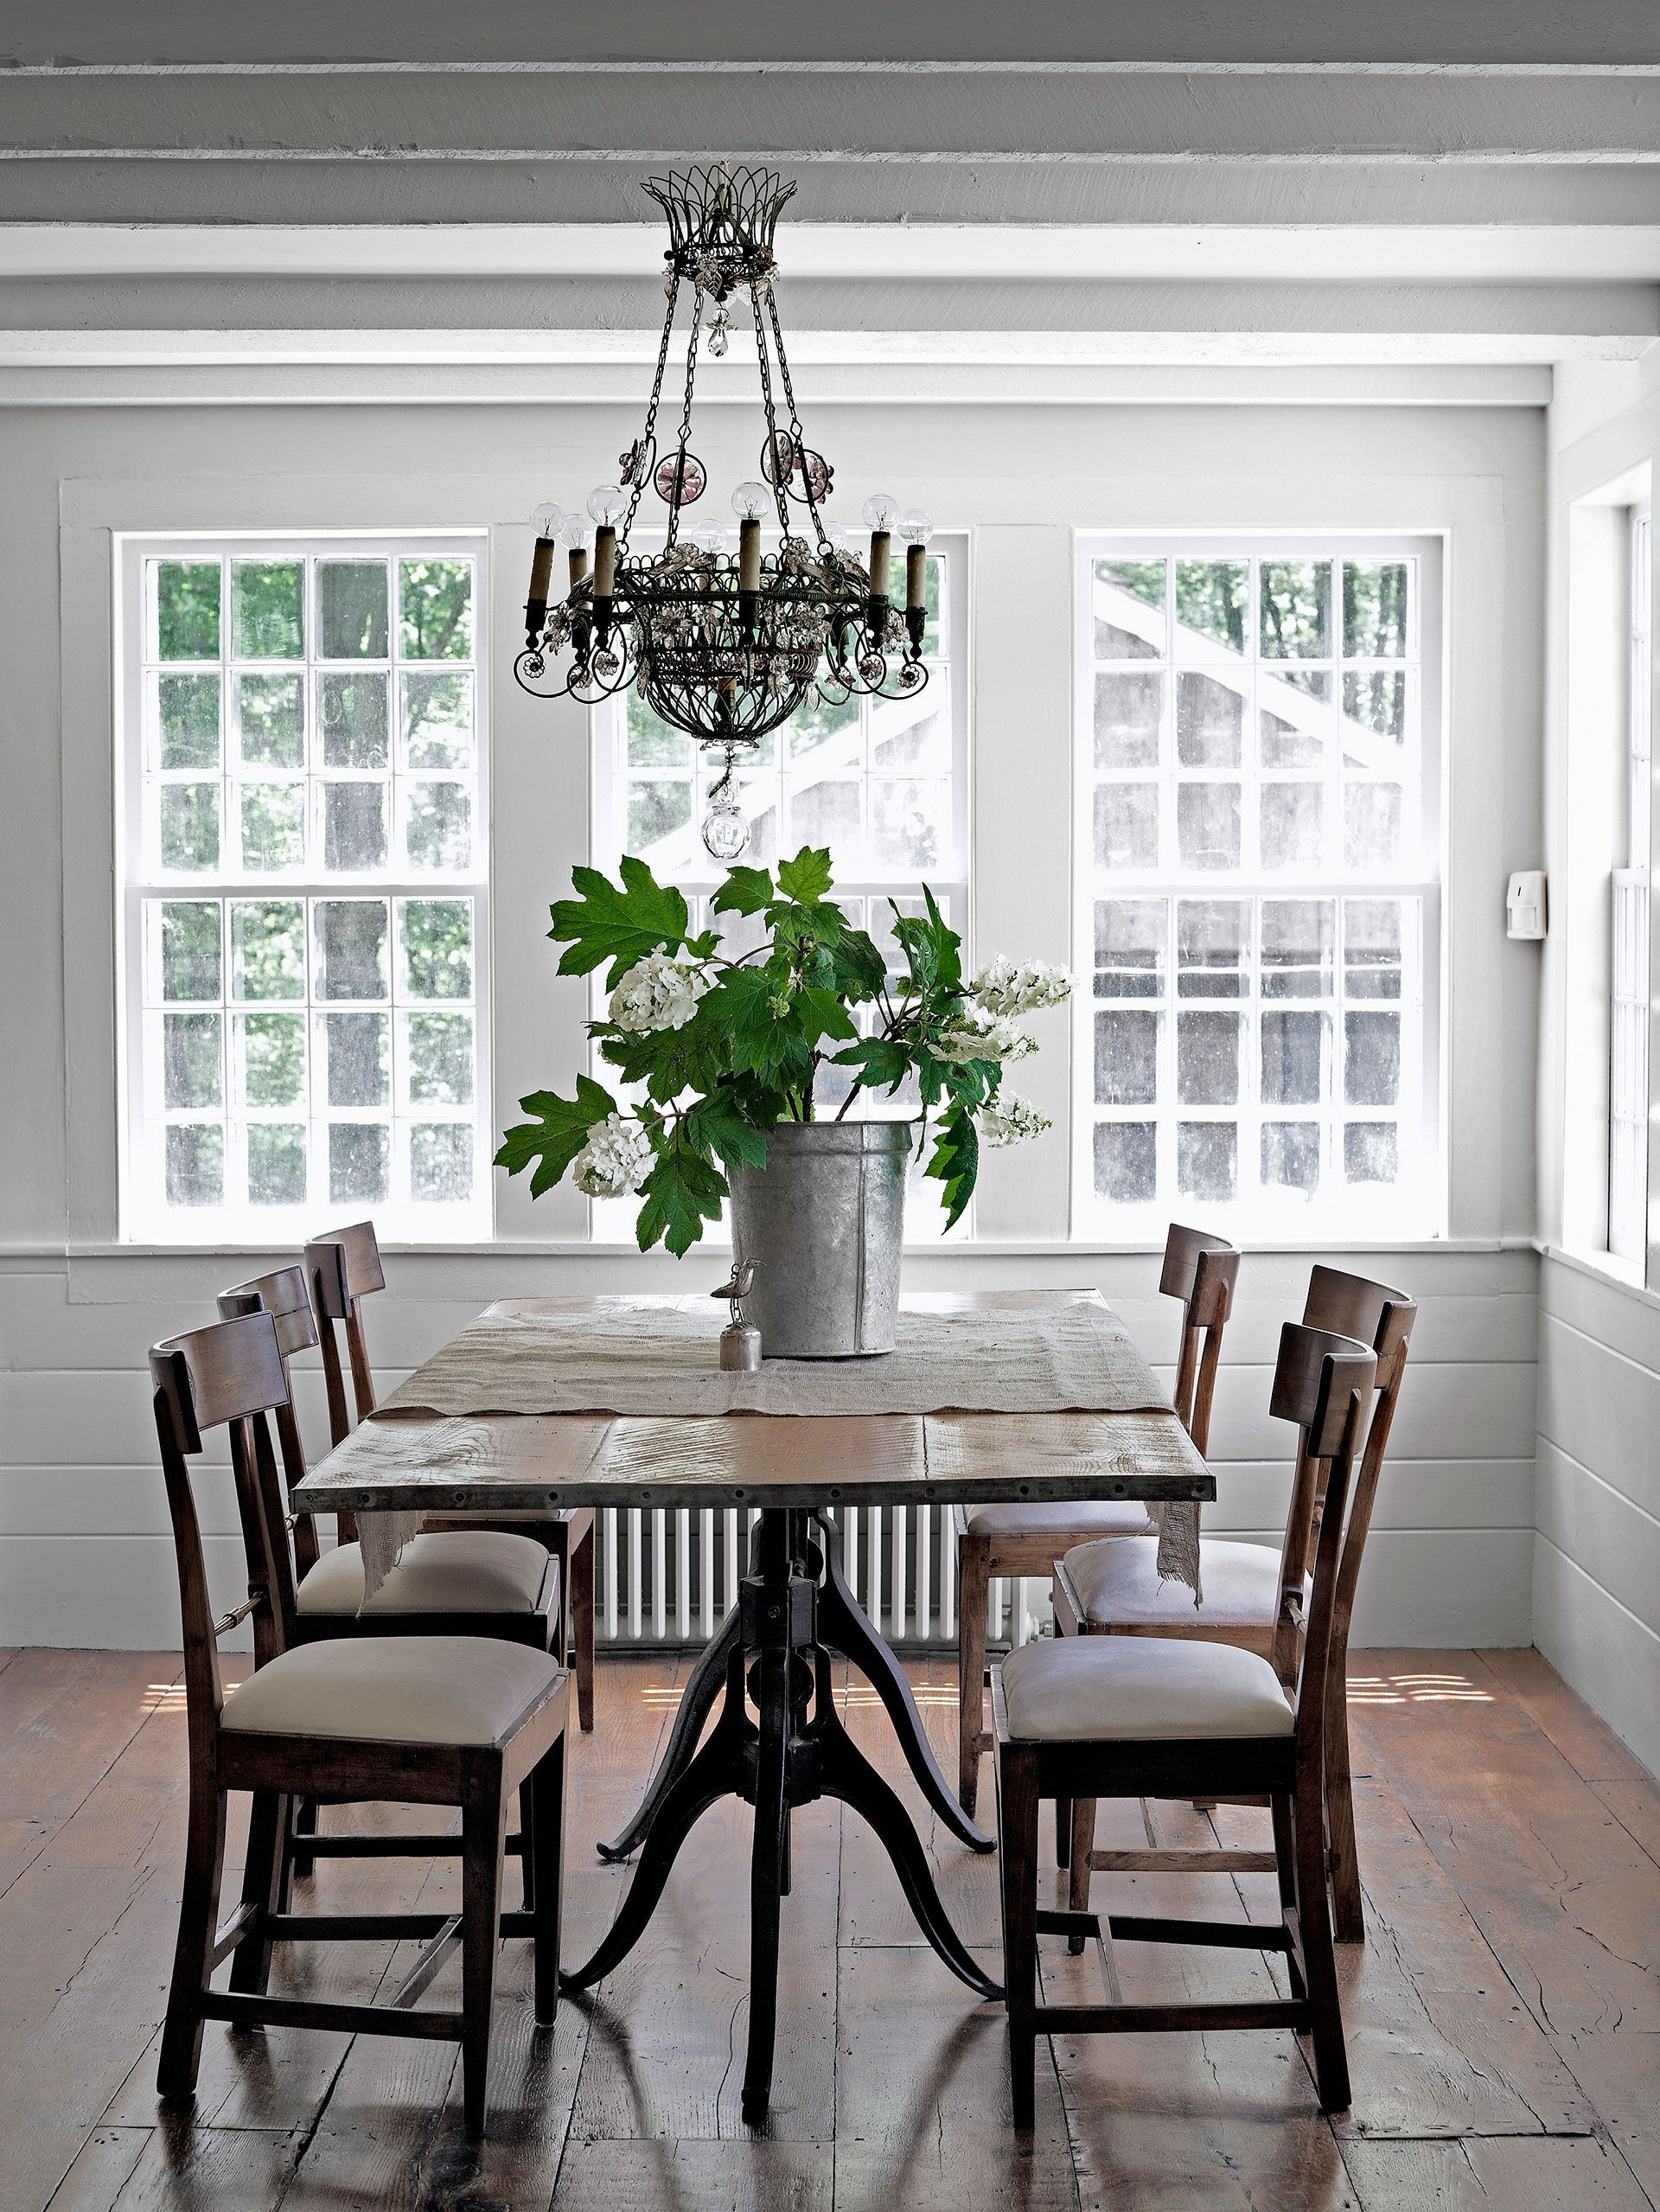 85 Inspired Ideas for Dining Room Decorating Antique